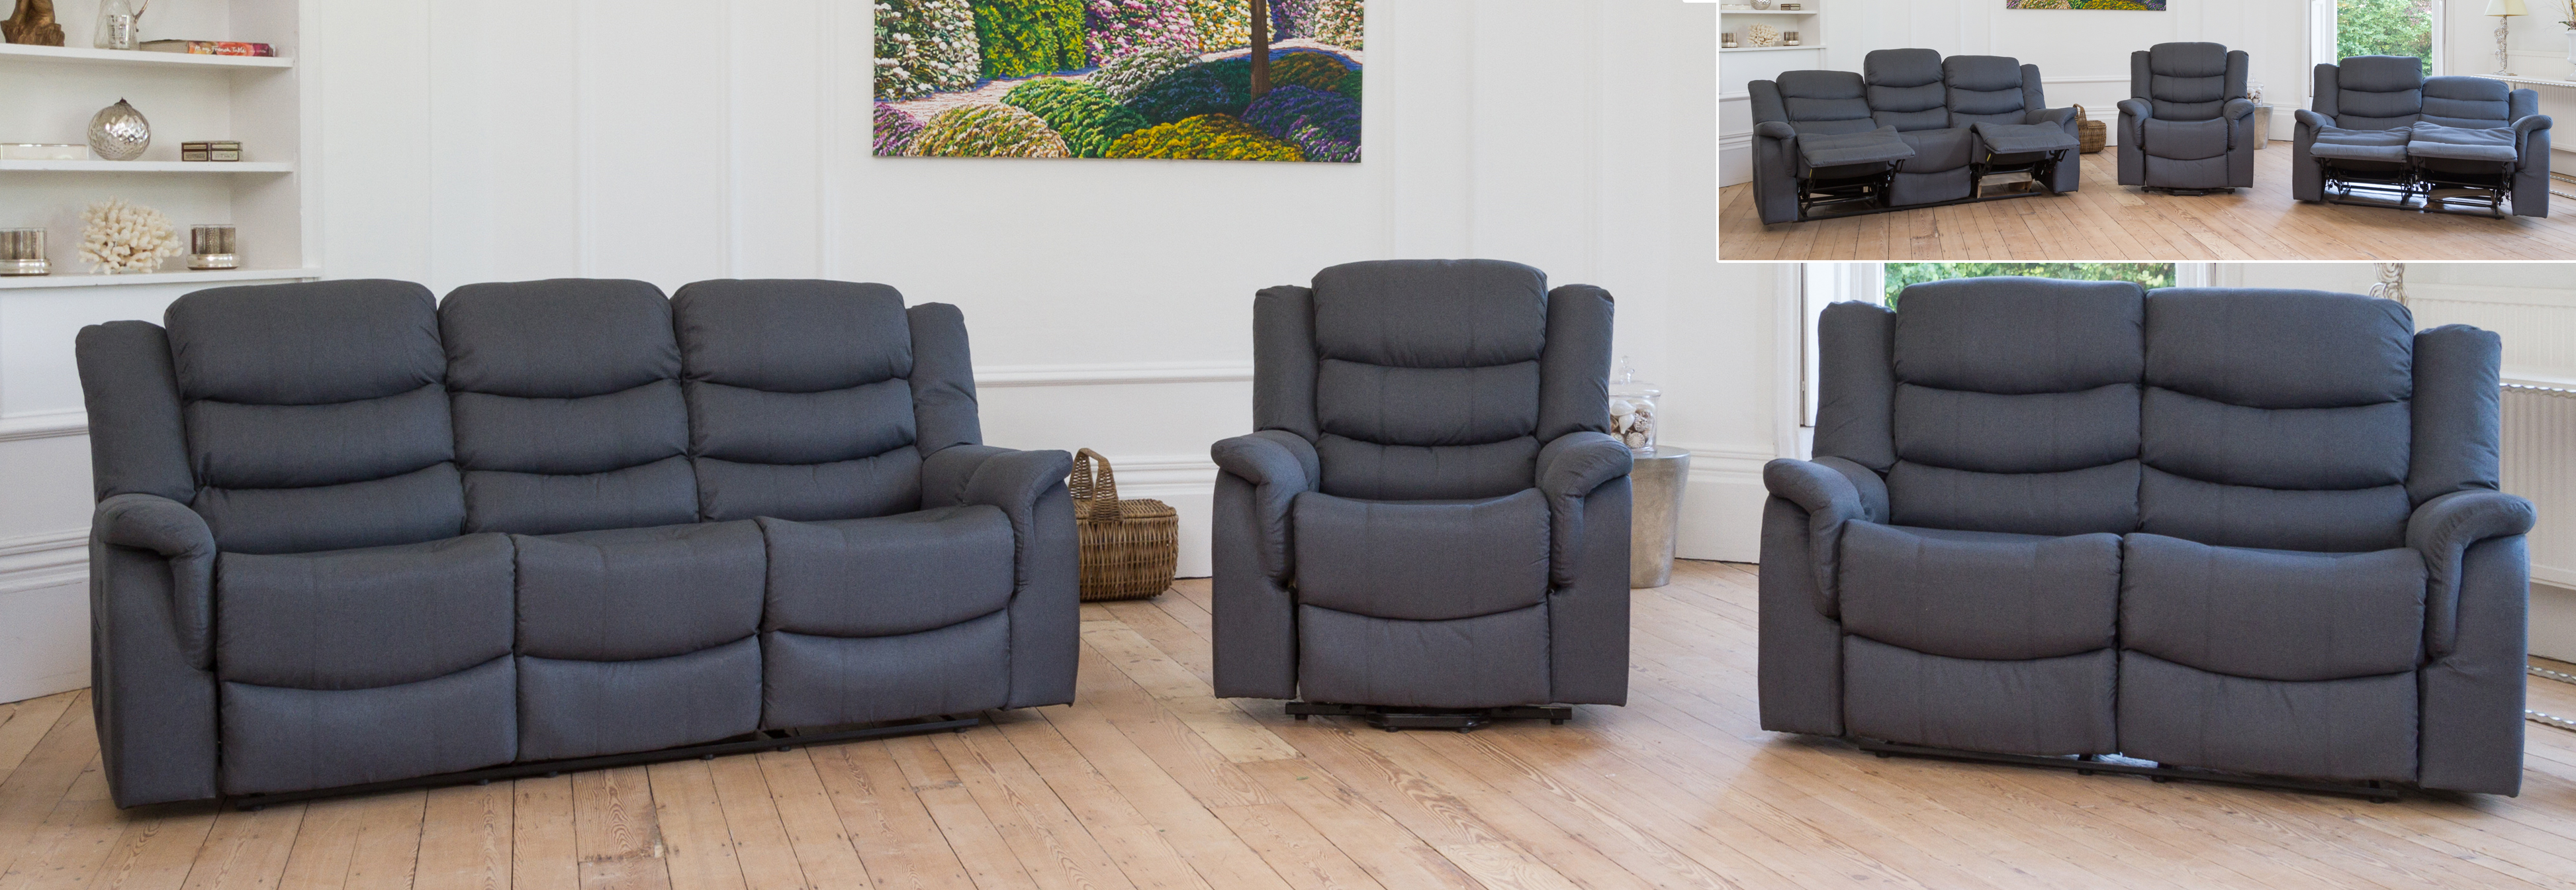 Portman Reclining Suite dark grey